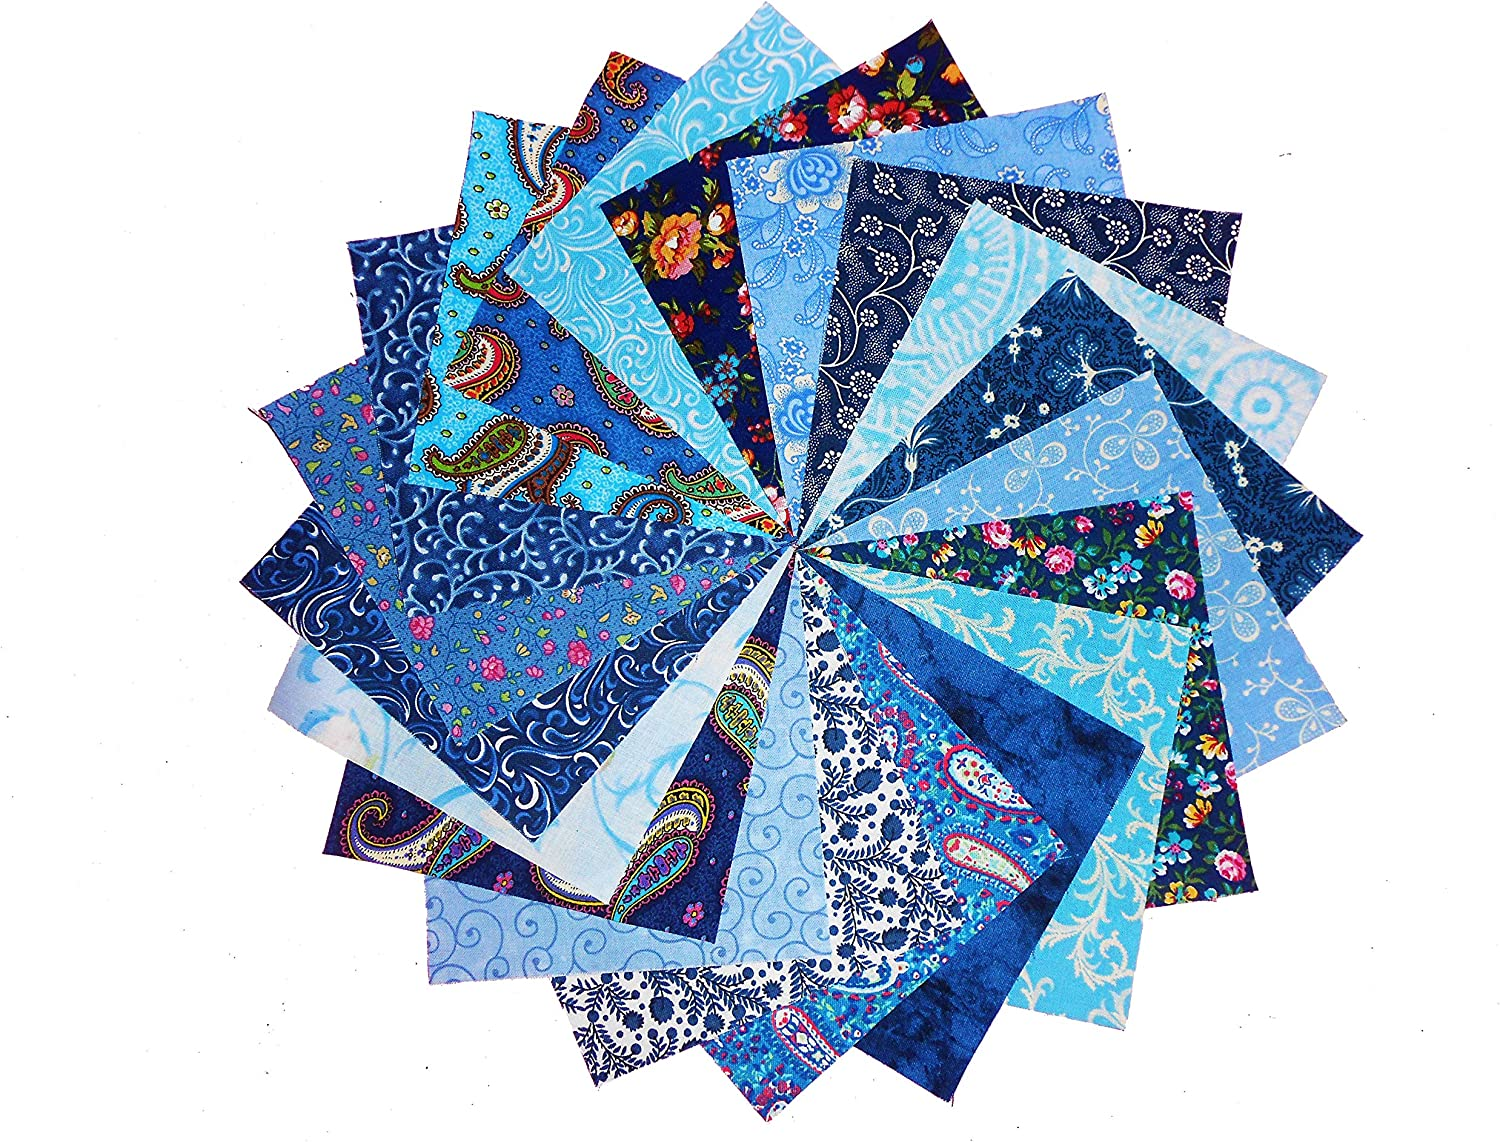 96 4 NEW Among the Flowers Quilting Fabric Charm Pack 2 OF EACH 48 DIFFERENT PRINTS